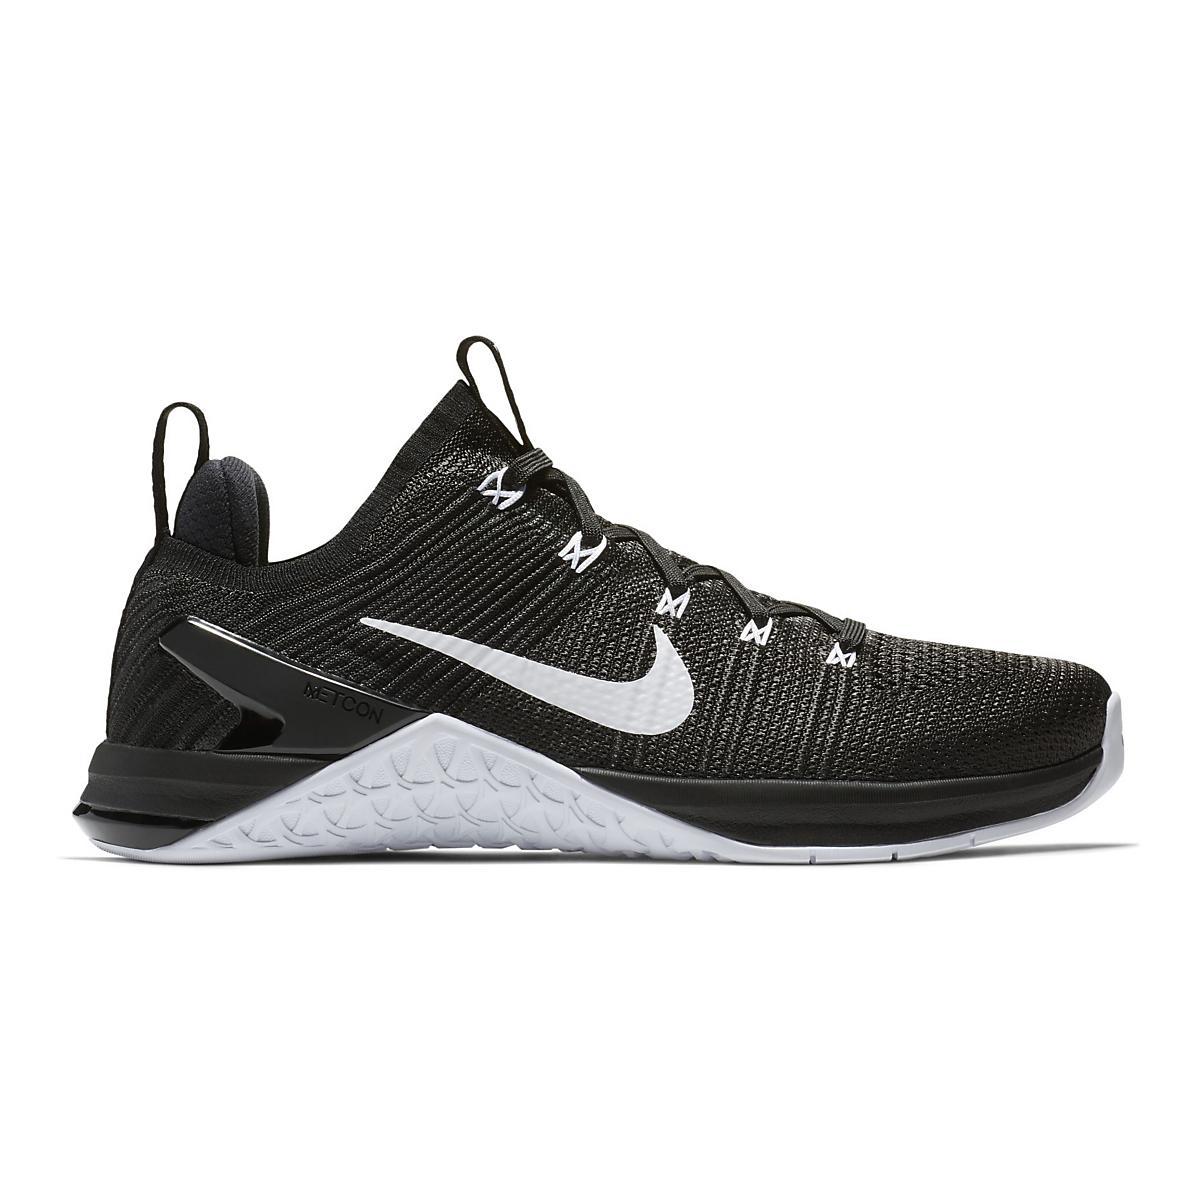 cafd12f21cf4 Womens Nike Metcon DSX Flyknit 2 Cross Training Shoe at Road Runner Sports